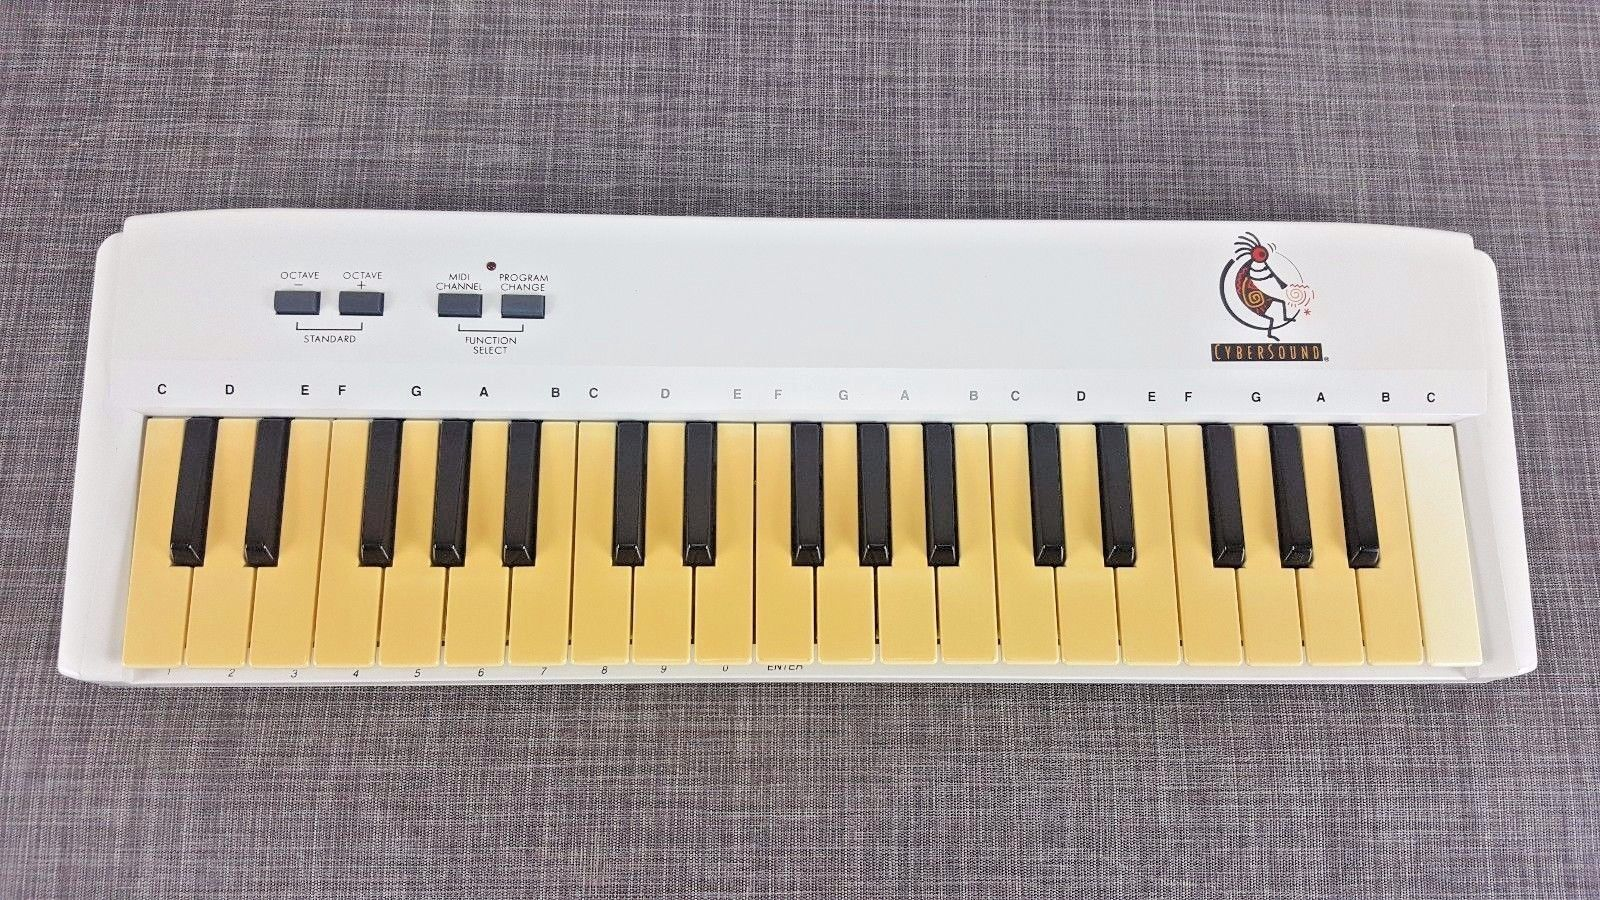 CyberSound Studio MIDI Keyboard